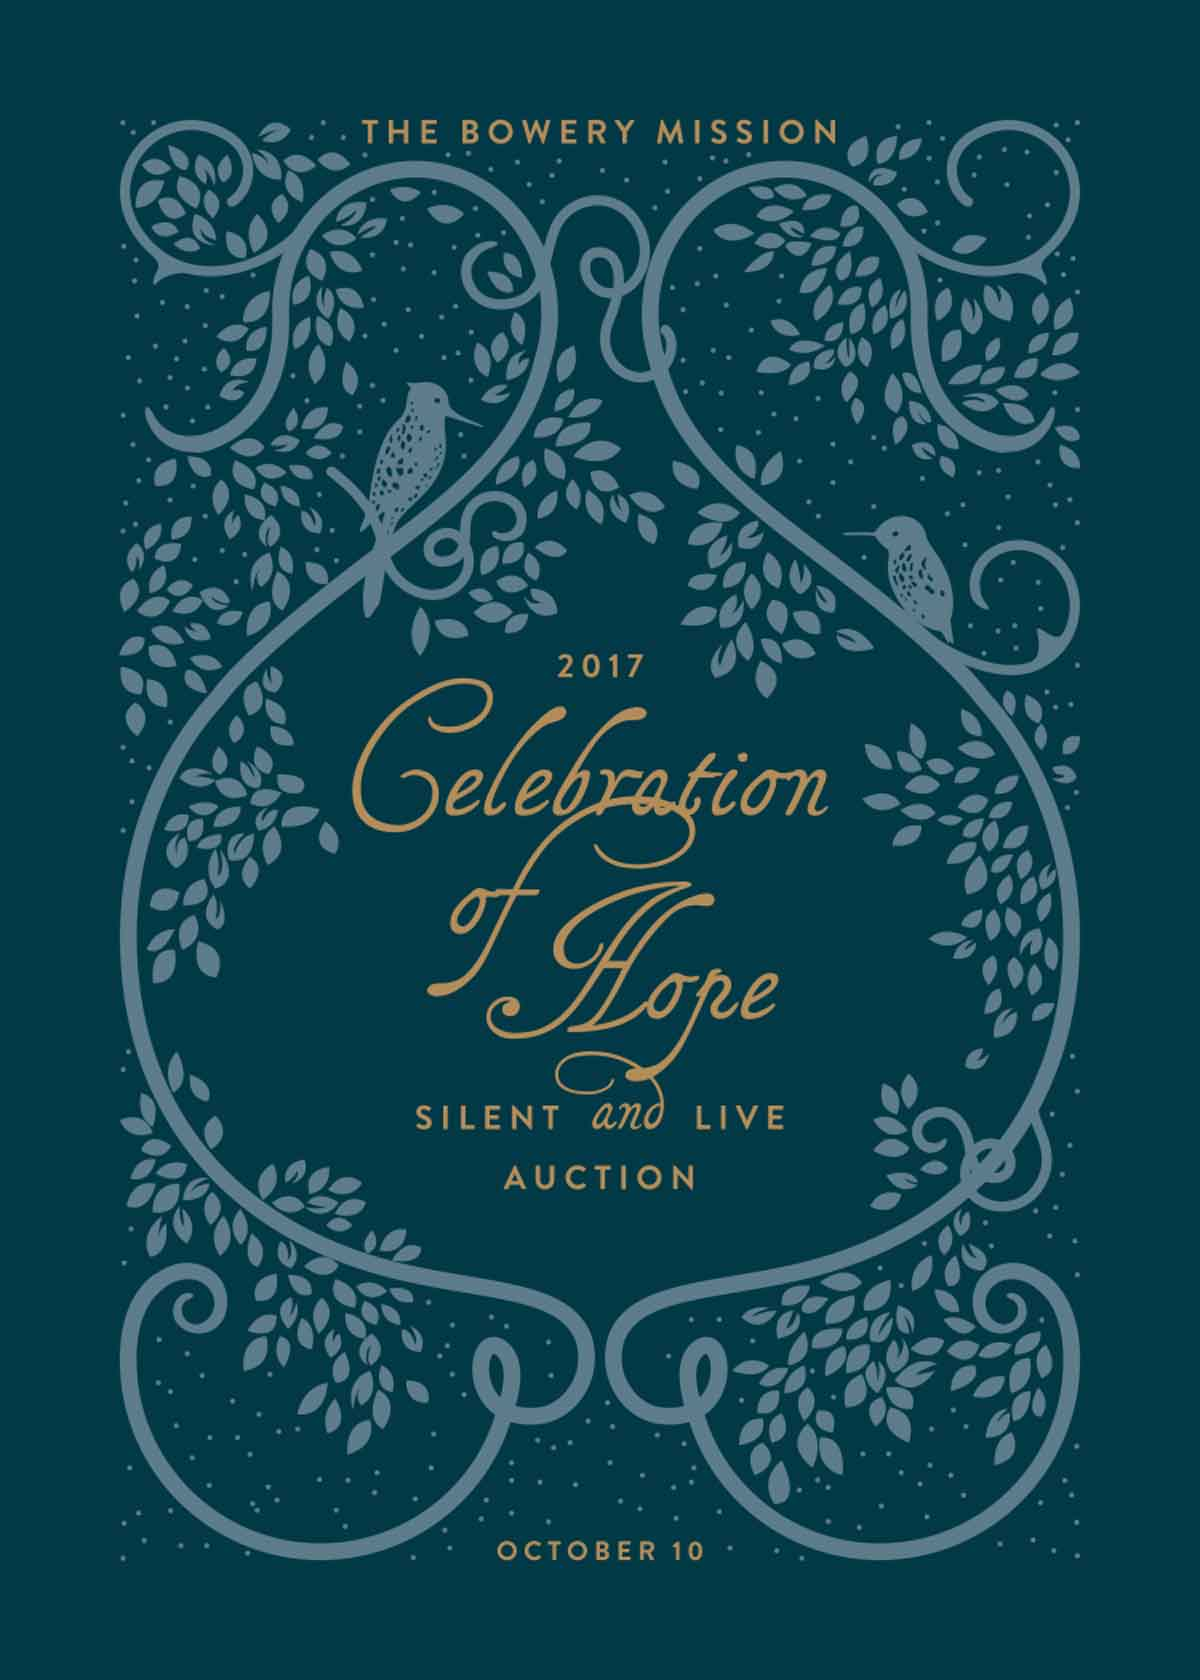 The Bowery Mission's 2017 Celebration of Hope Silent and Live Auction